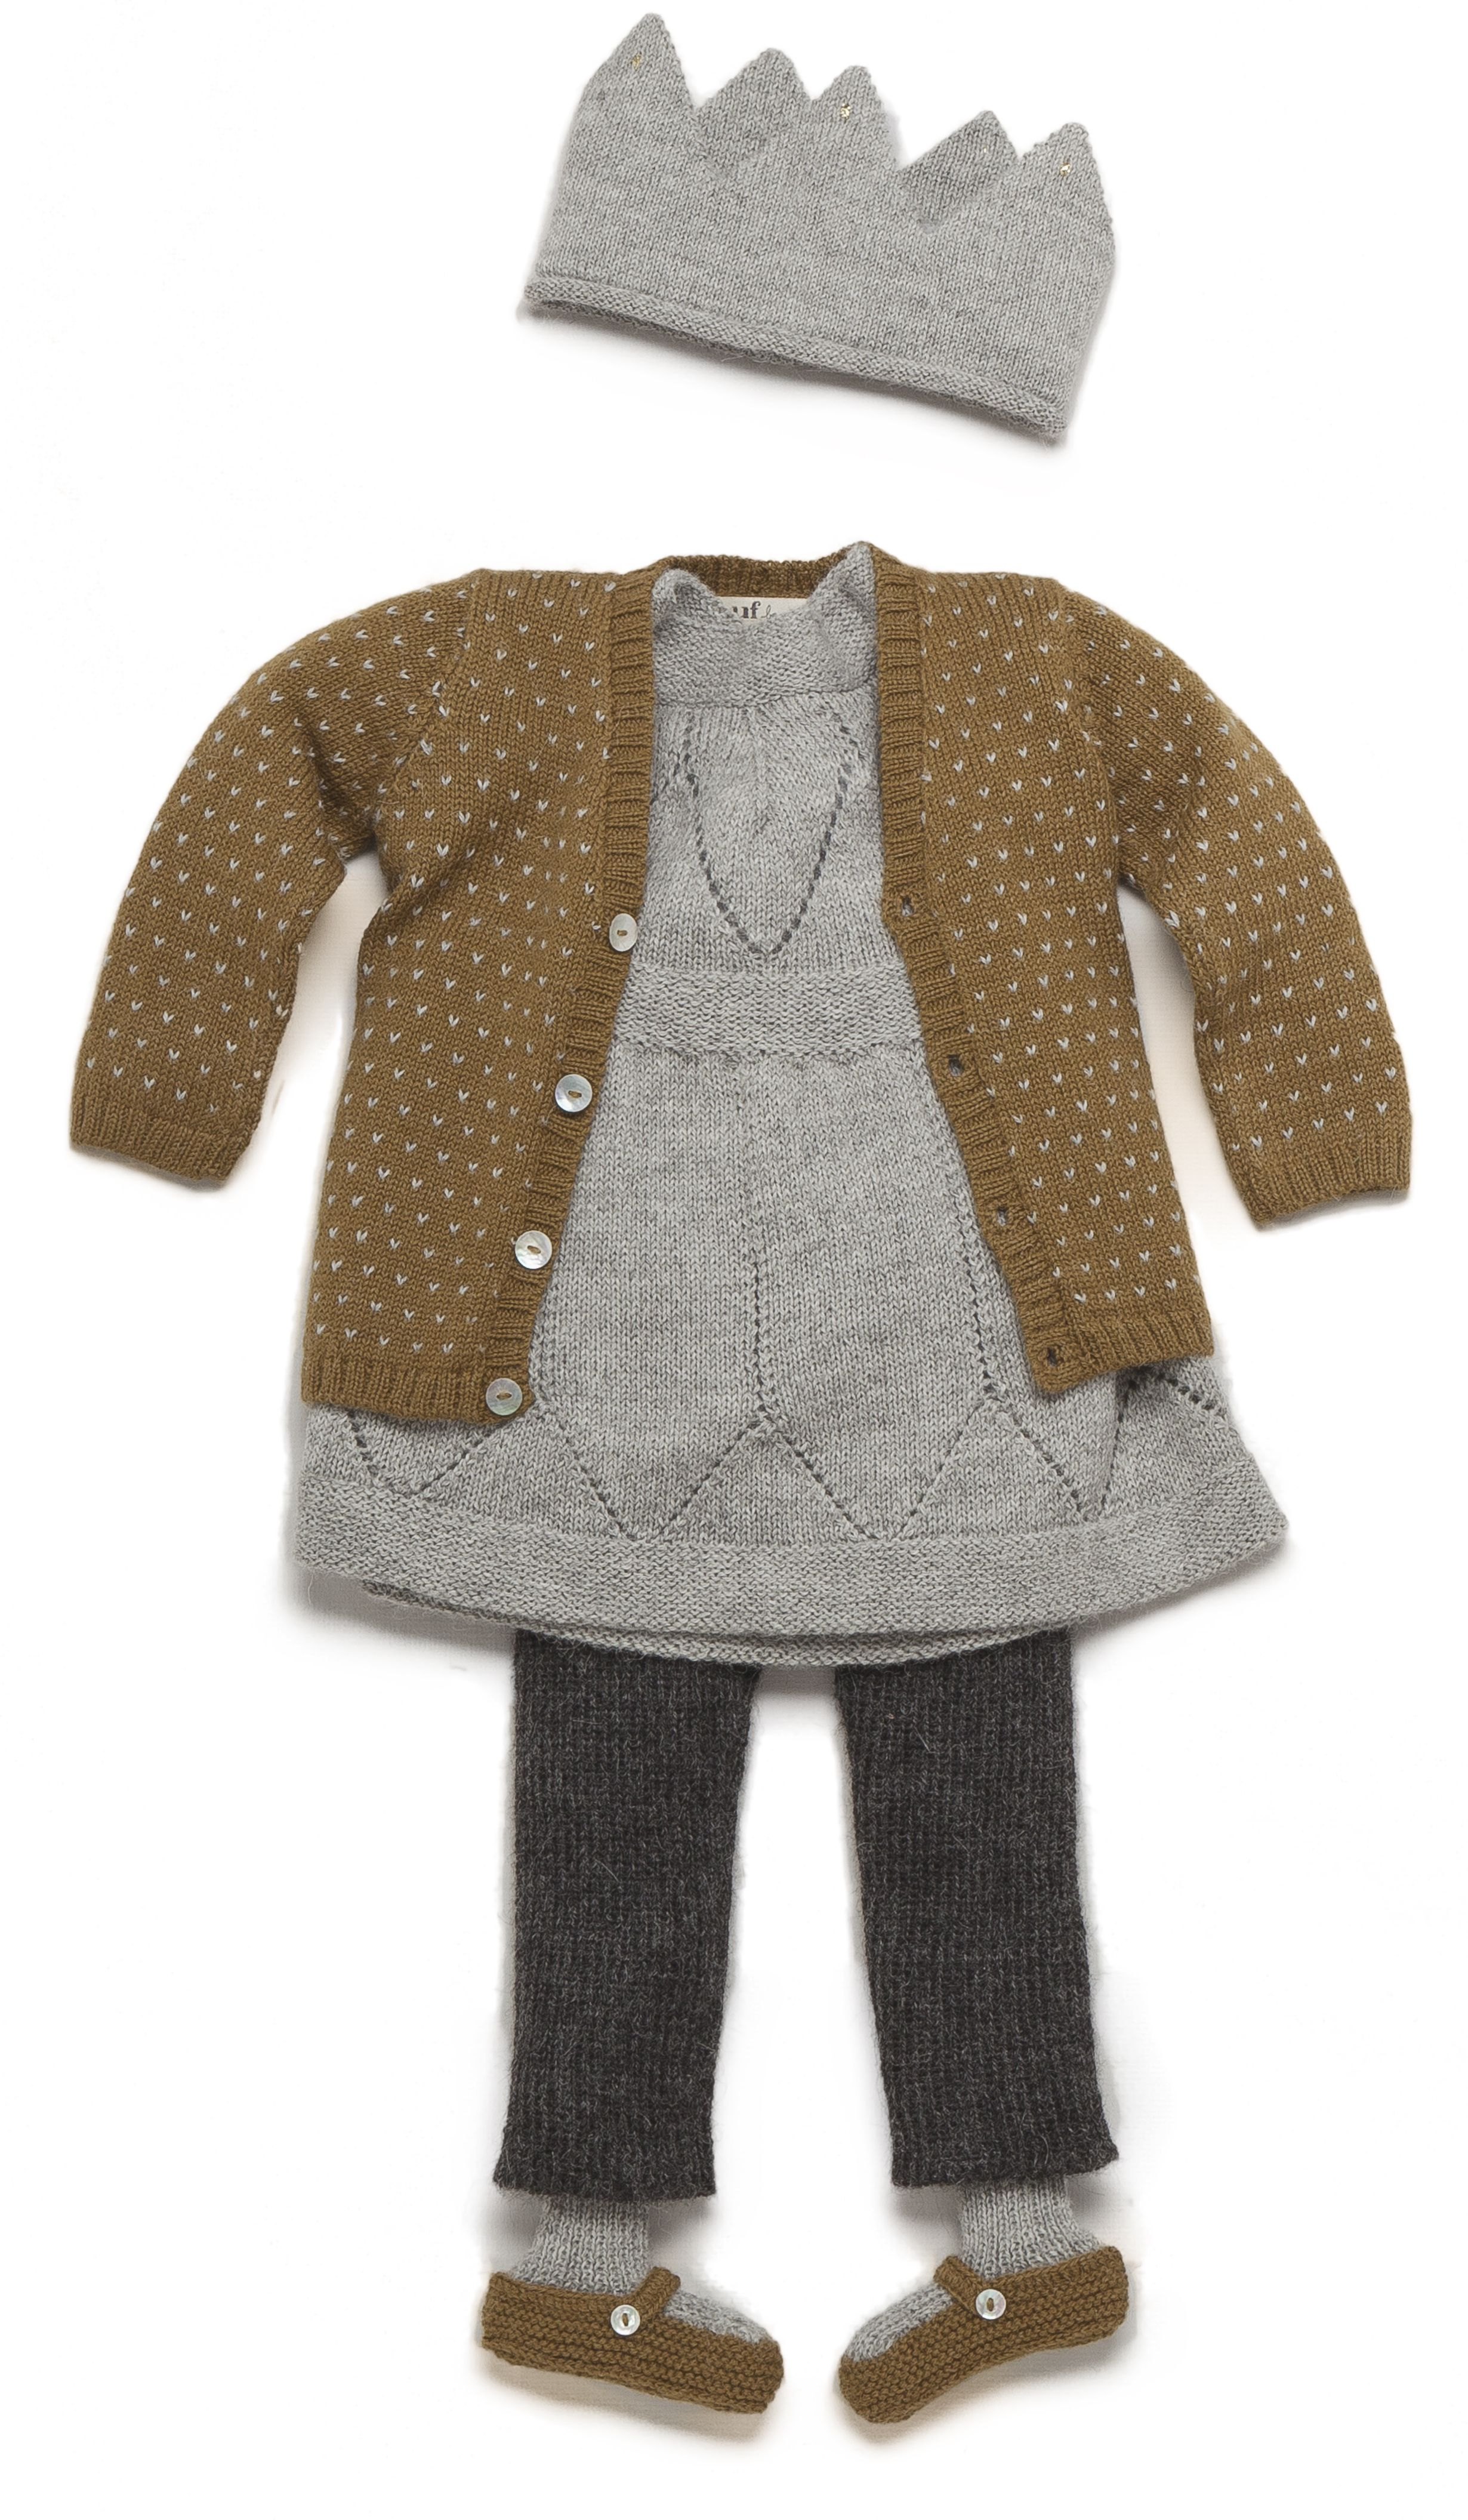 Oeuf Llc Outfits Kids Outfits